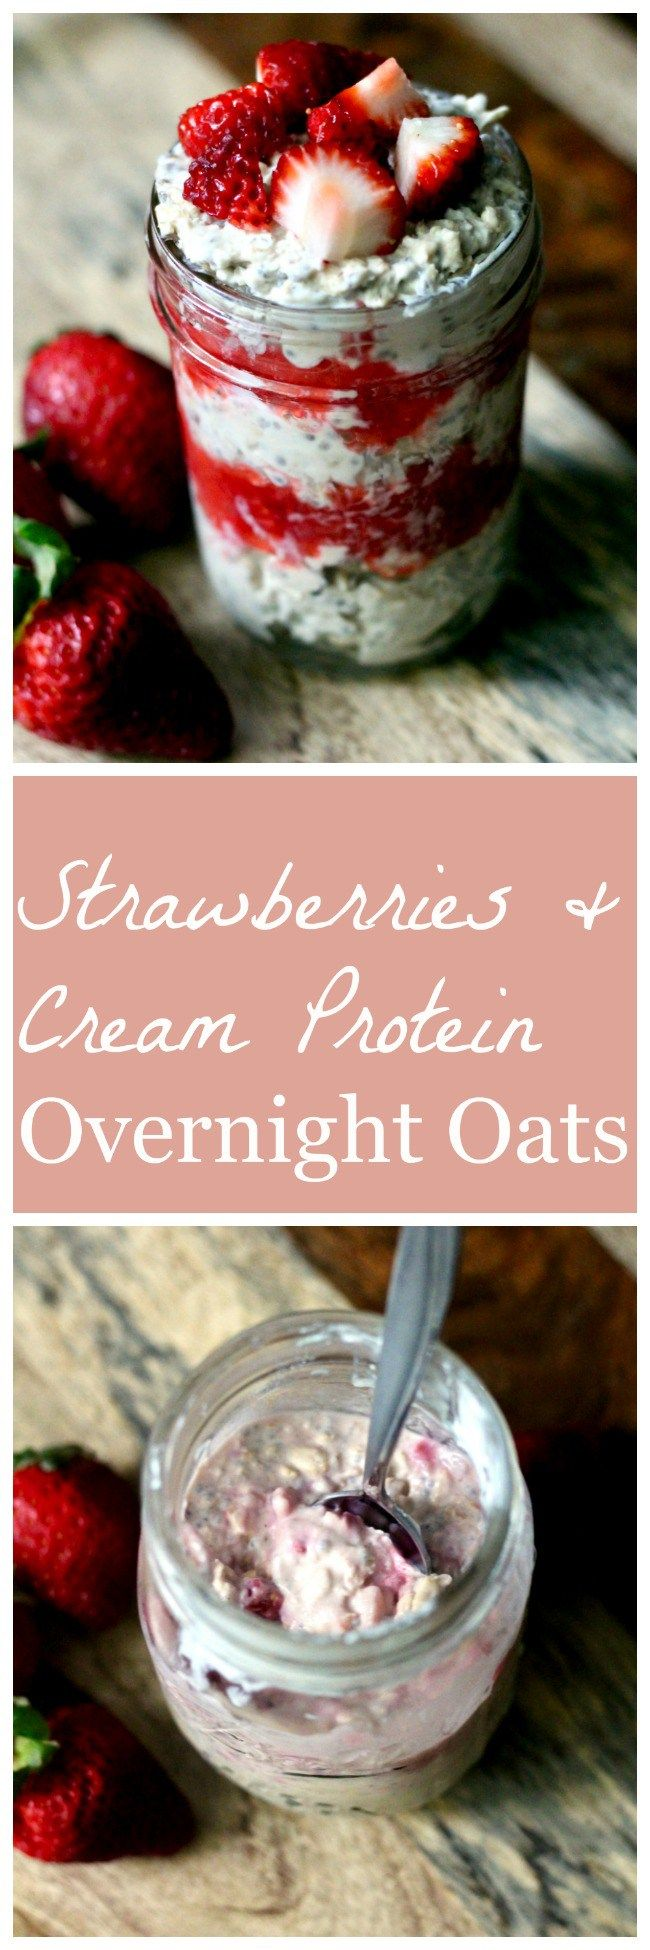 Thanks to a bit of vanilla protein powder, these strawberries and cream overnight oats are a healthy excuse to eat dessert for breakfast.